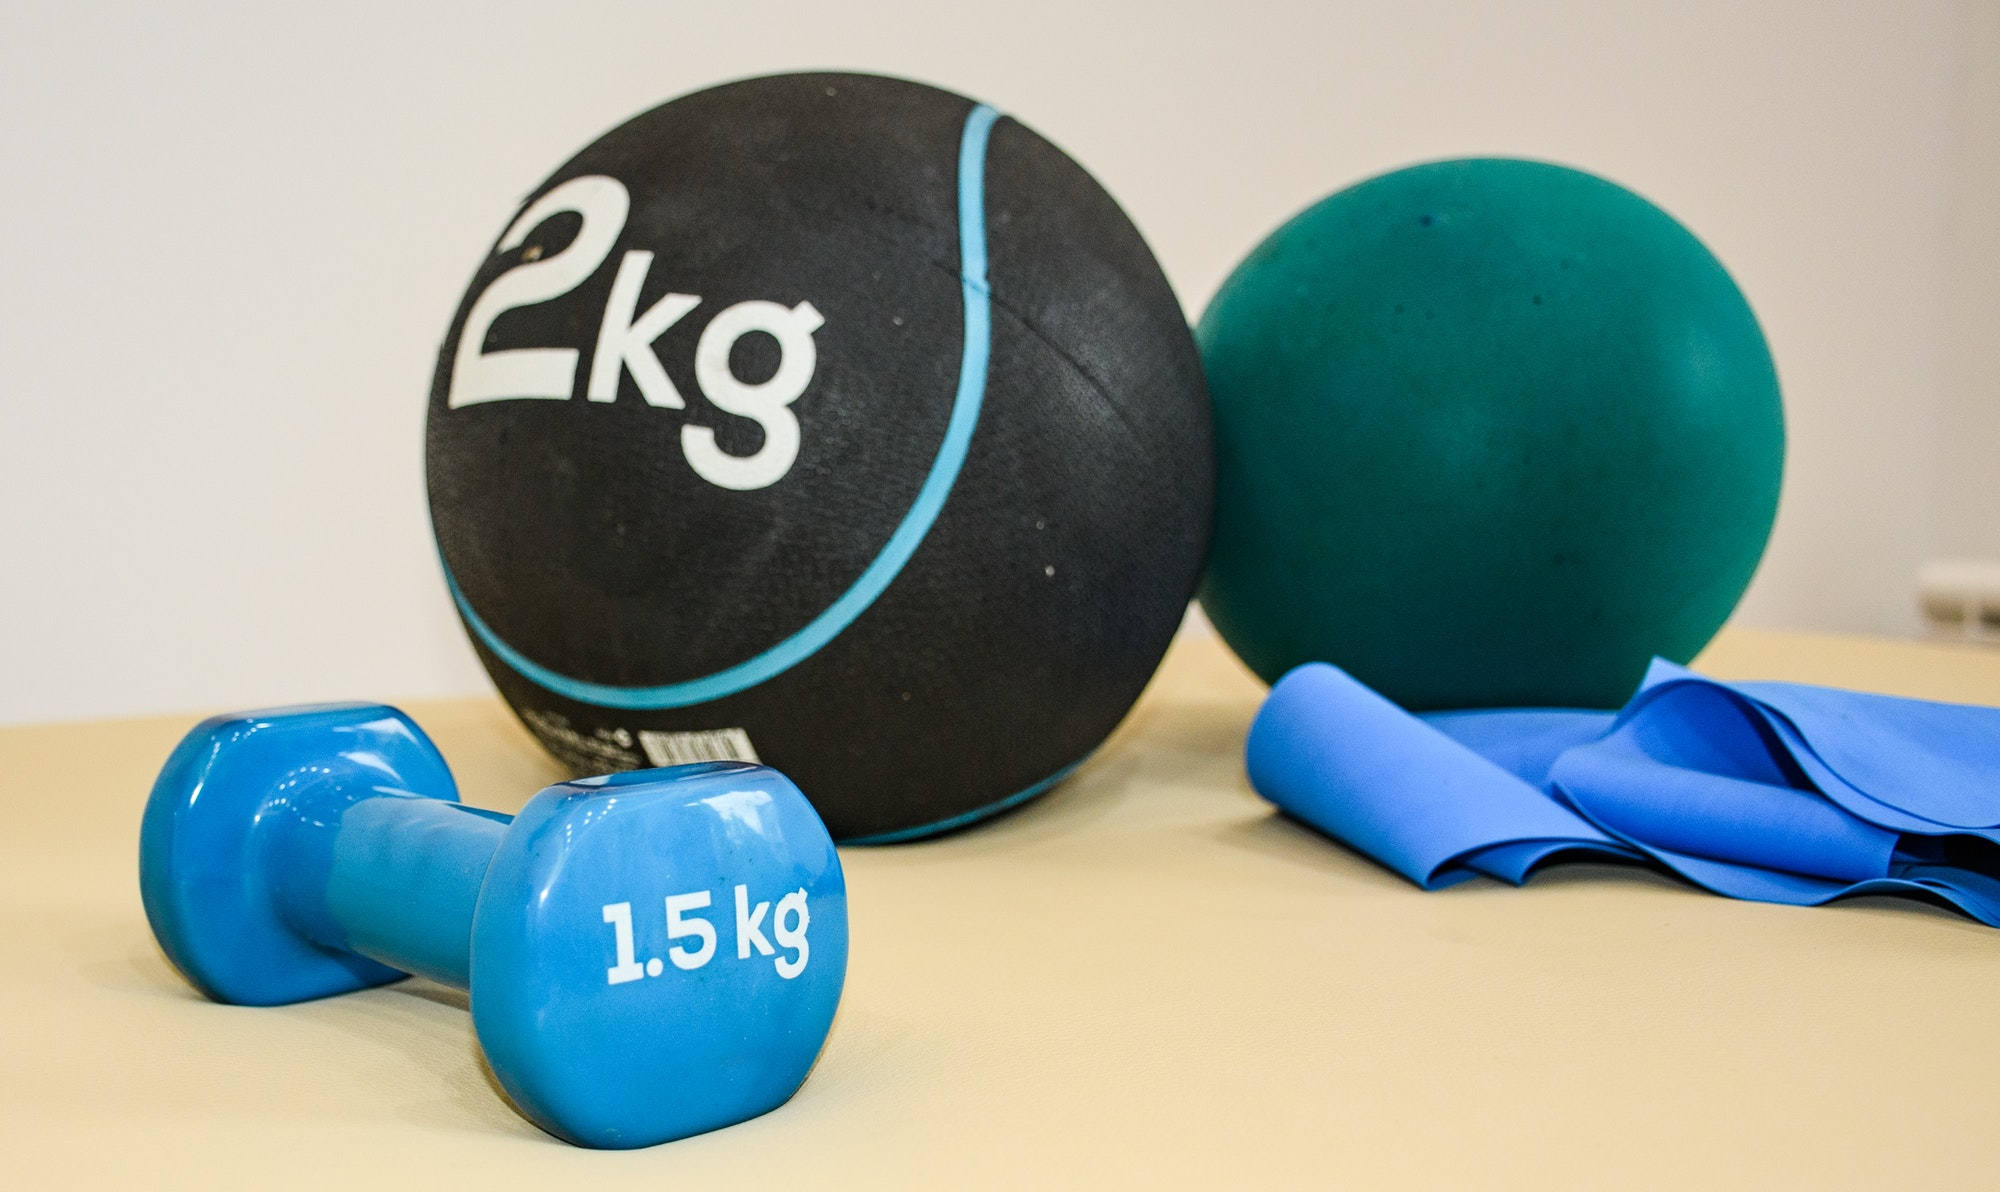 Close-up of workout gear, fitness equipment. Restistance band, med ball, dumbbell.